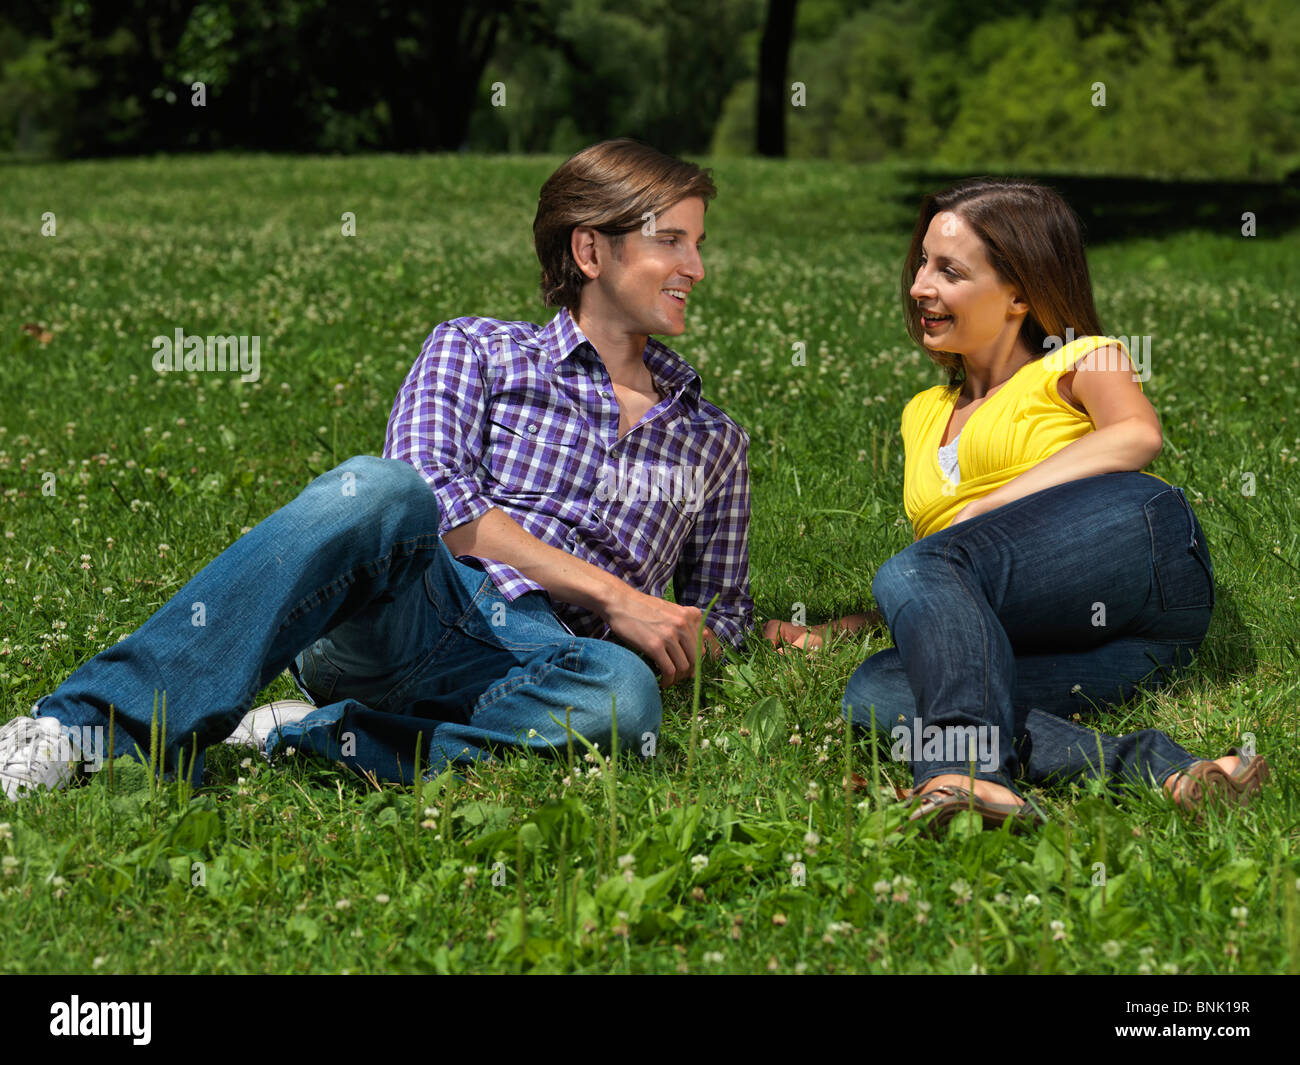 Young happy couple in their early thirties lying on grass in a park - Stock Image